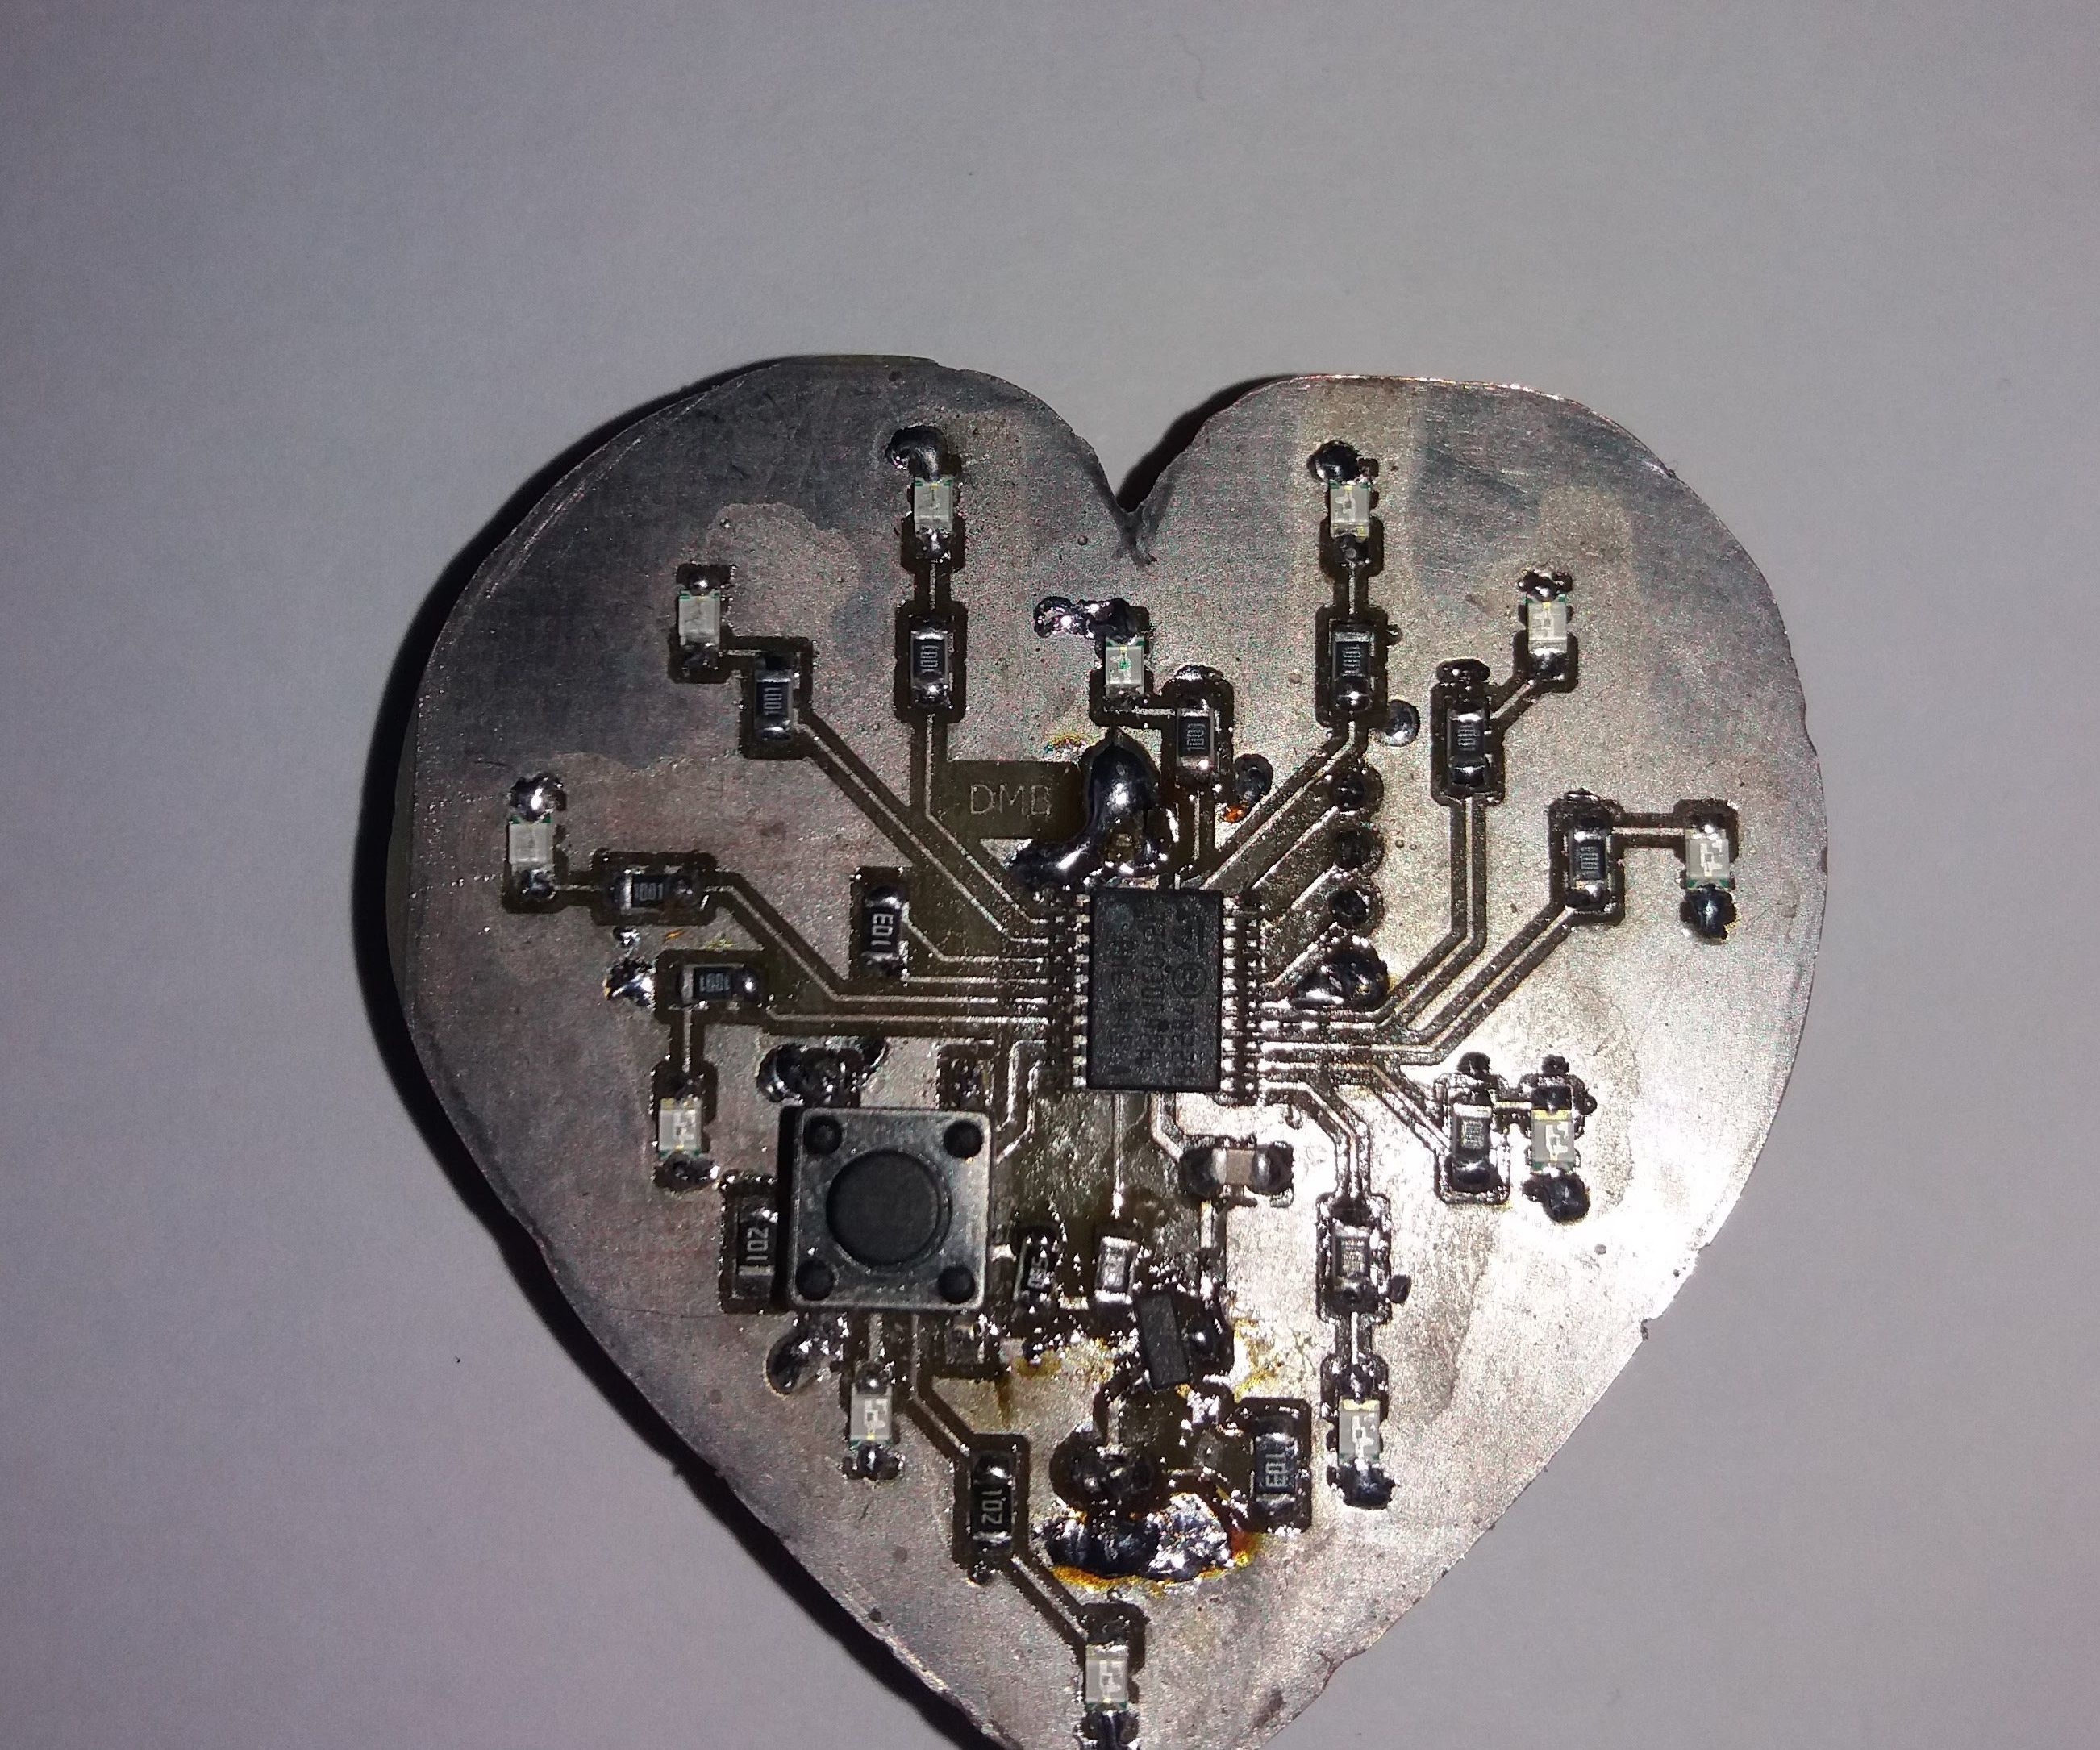 Simple STM32 heart-shaped led blinker